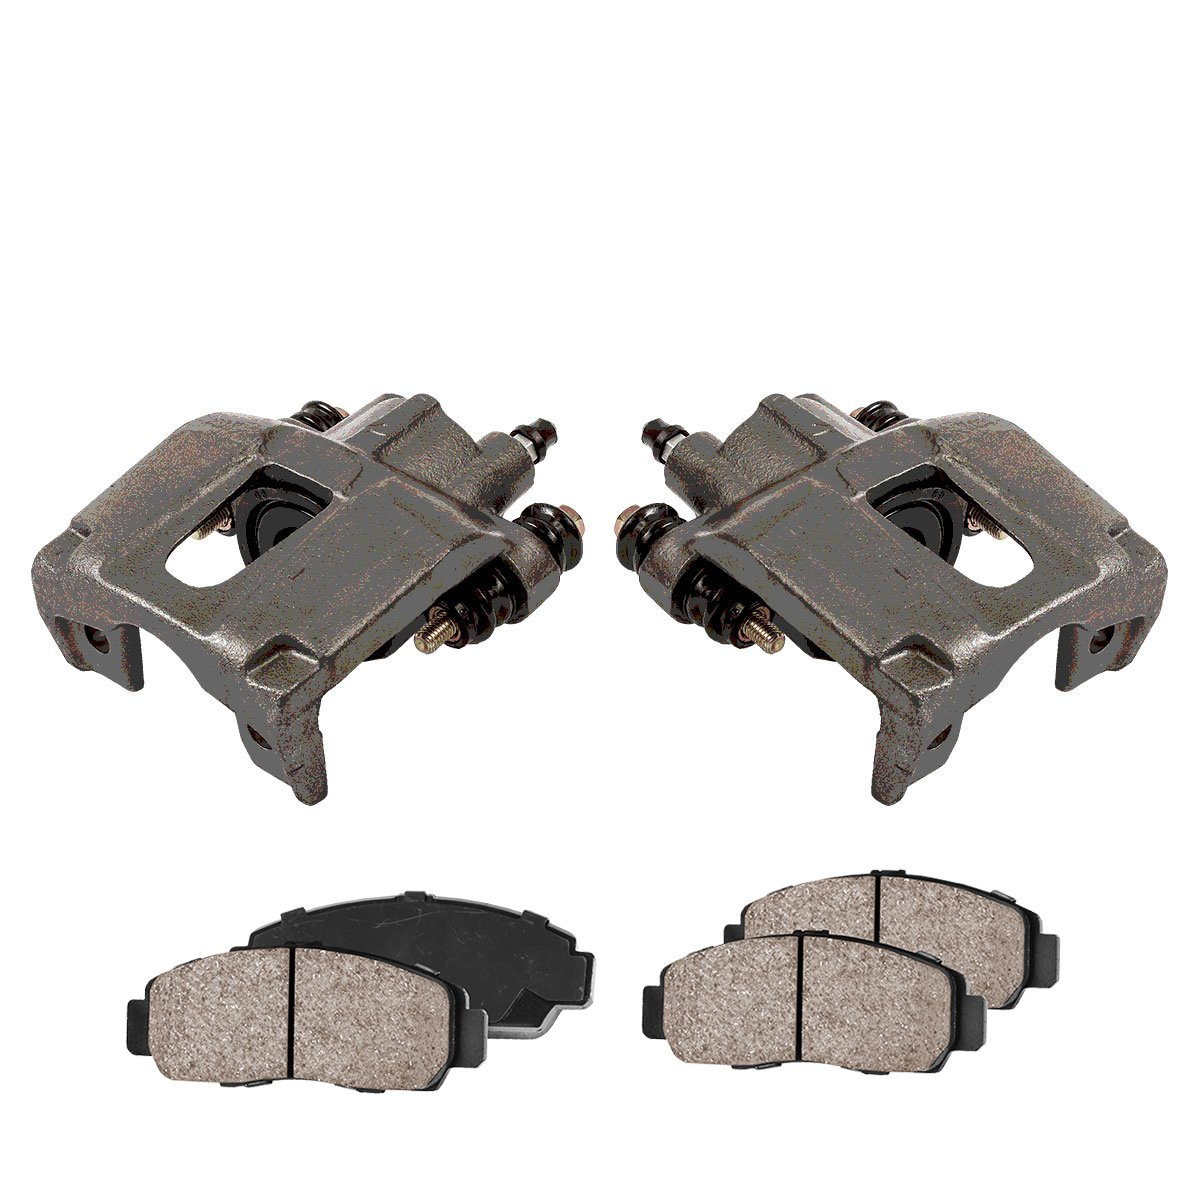 REAR Premium Loaded OE Caliper Assembly Set + Quiet Low Dust Ceramic Brake Pads CCK02347 4 2